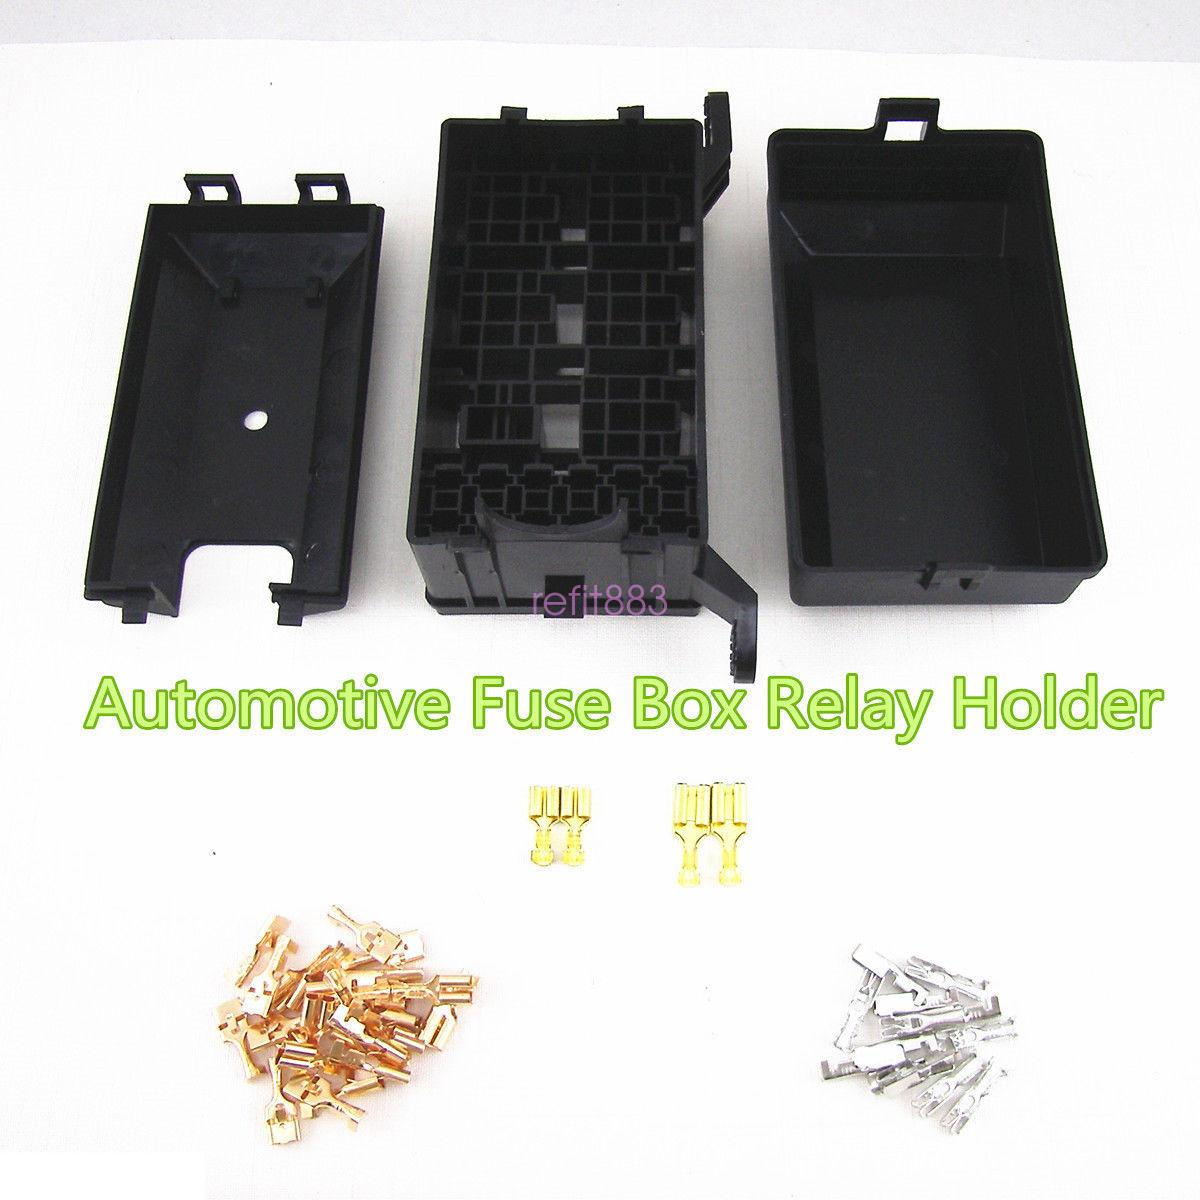 hight resolution of  mack rd fuse box new black car vehicles 6 relay 5 road relay box